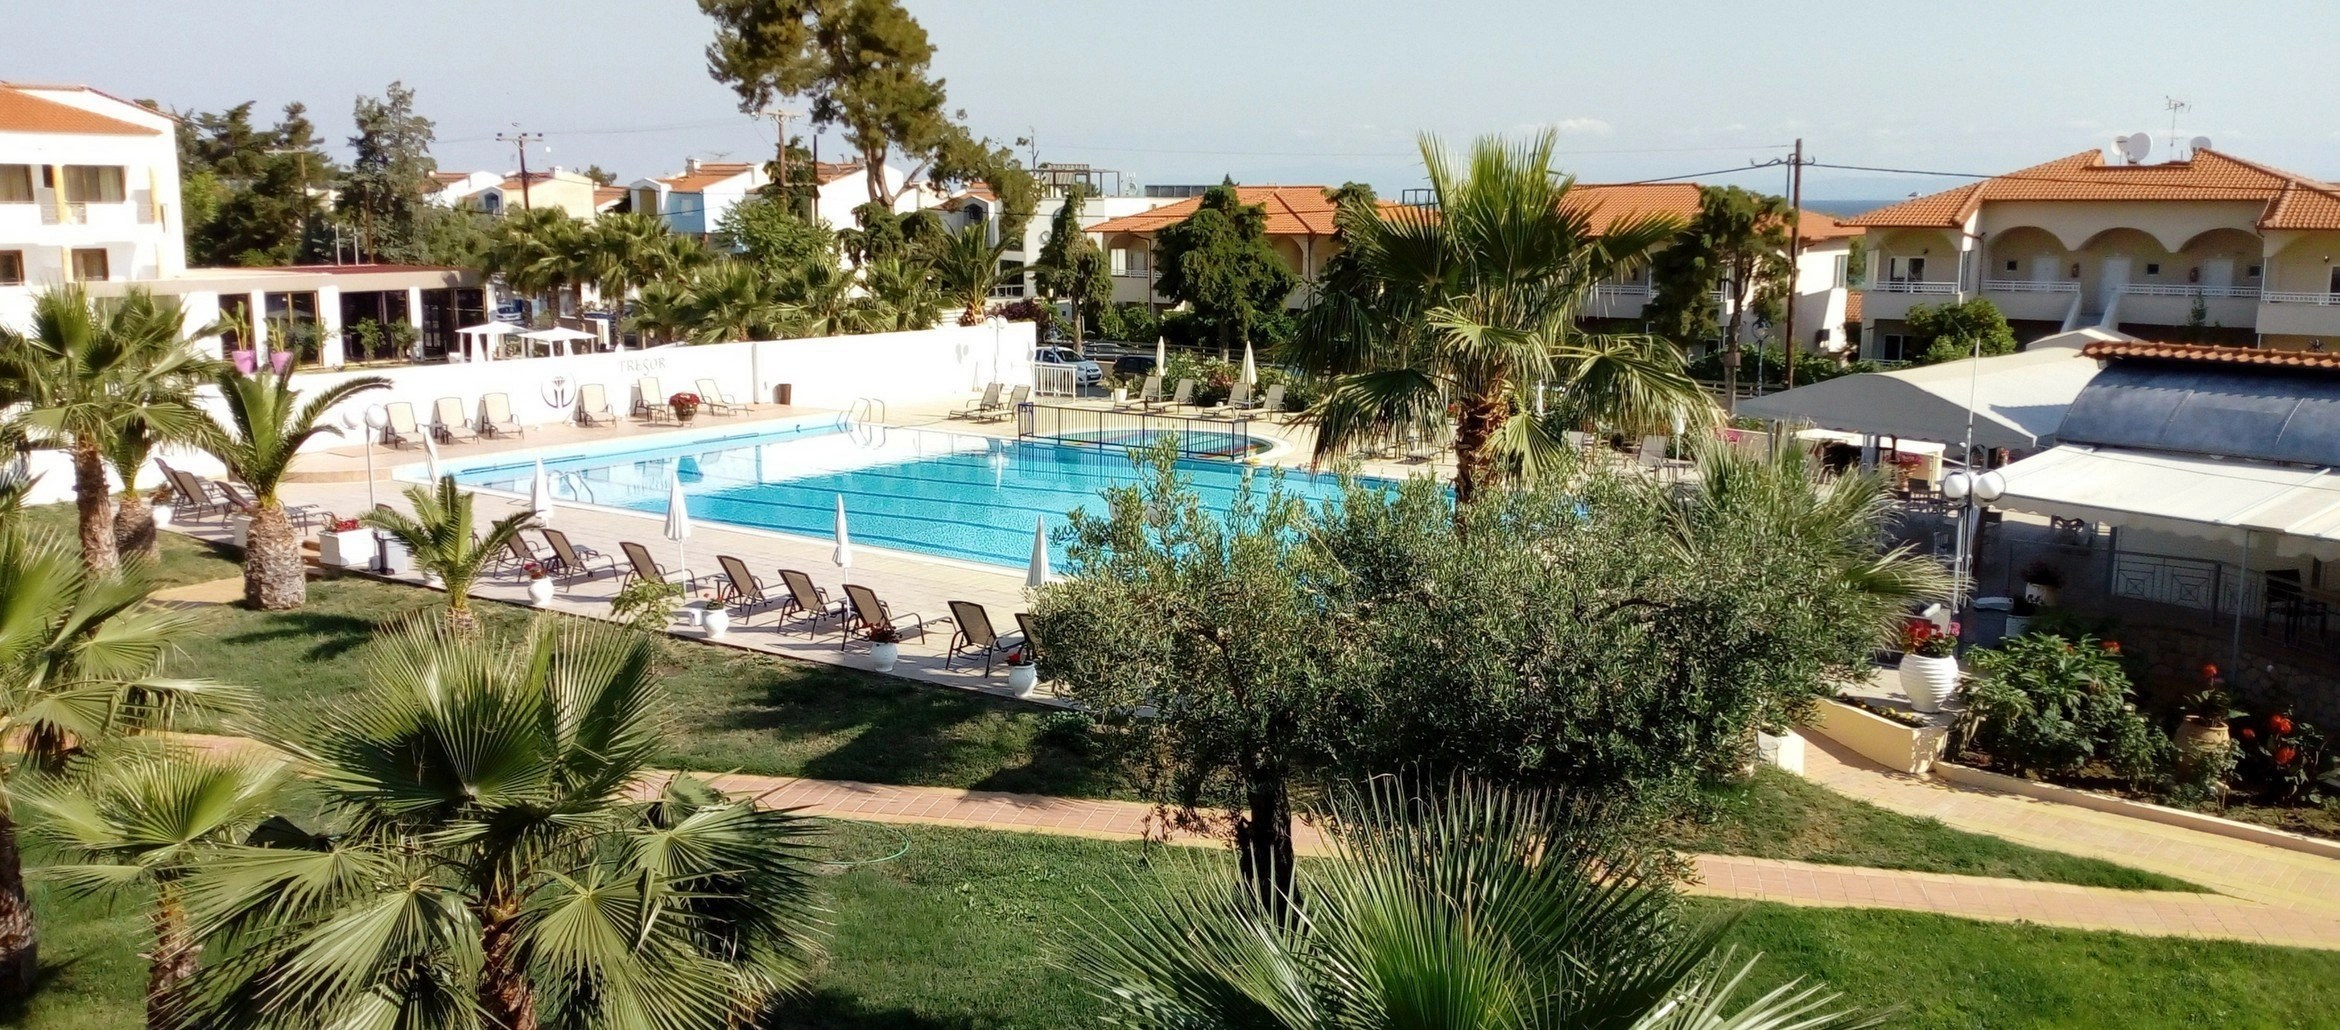 Large swimming pool in the backyard of the Tresor Sousouras Hotel ATTACHMENT DETAILS Tresor-Sousuras-Hotel-Greece-Cover.jpg June 24, 2018 794 KB 2340 × 1030 Edit Image Delete Permanently URL https://www.ivasays.com/wp-content/uploads/2018/06/Tresor-Sousuras-Hotel-Greece-Cover.jpg Title Tresor Sousuras Hotel in Chaniotis, Greece with palm trees around it.